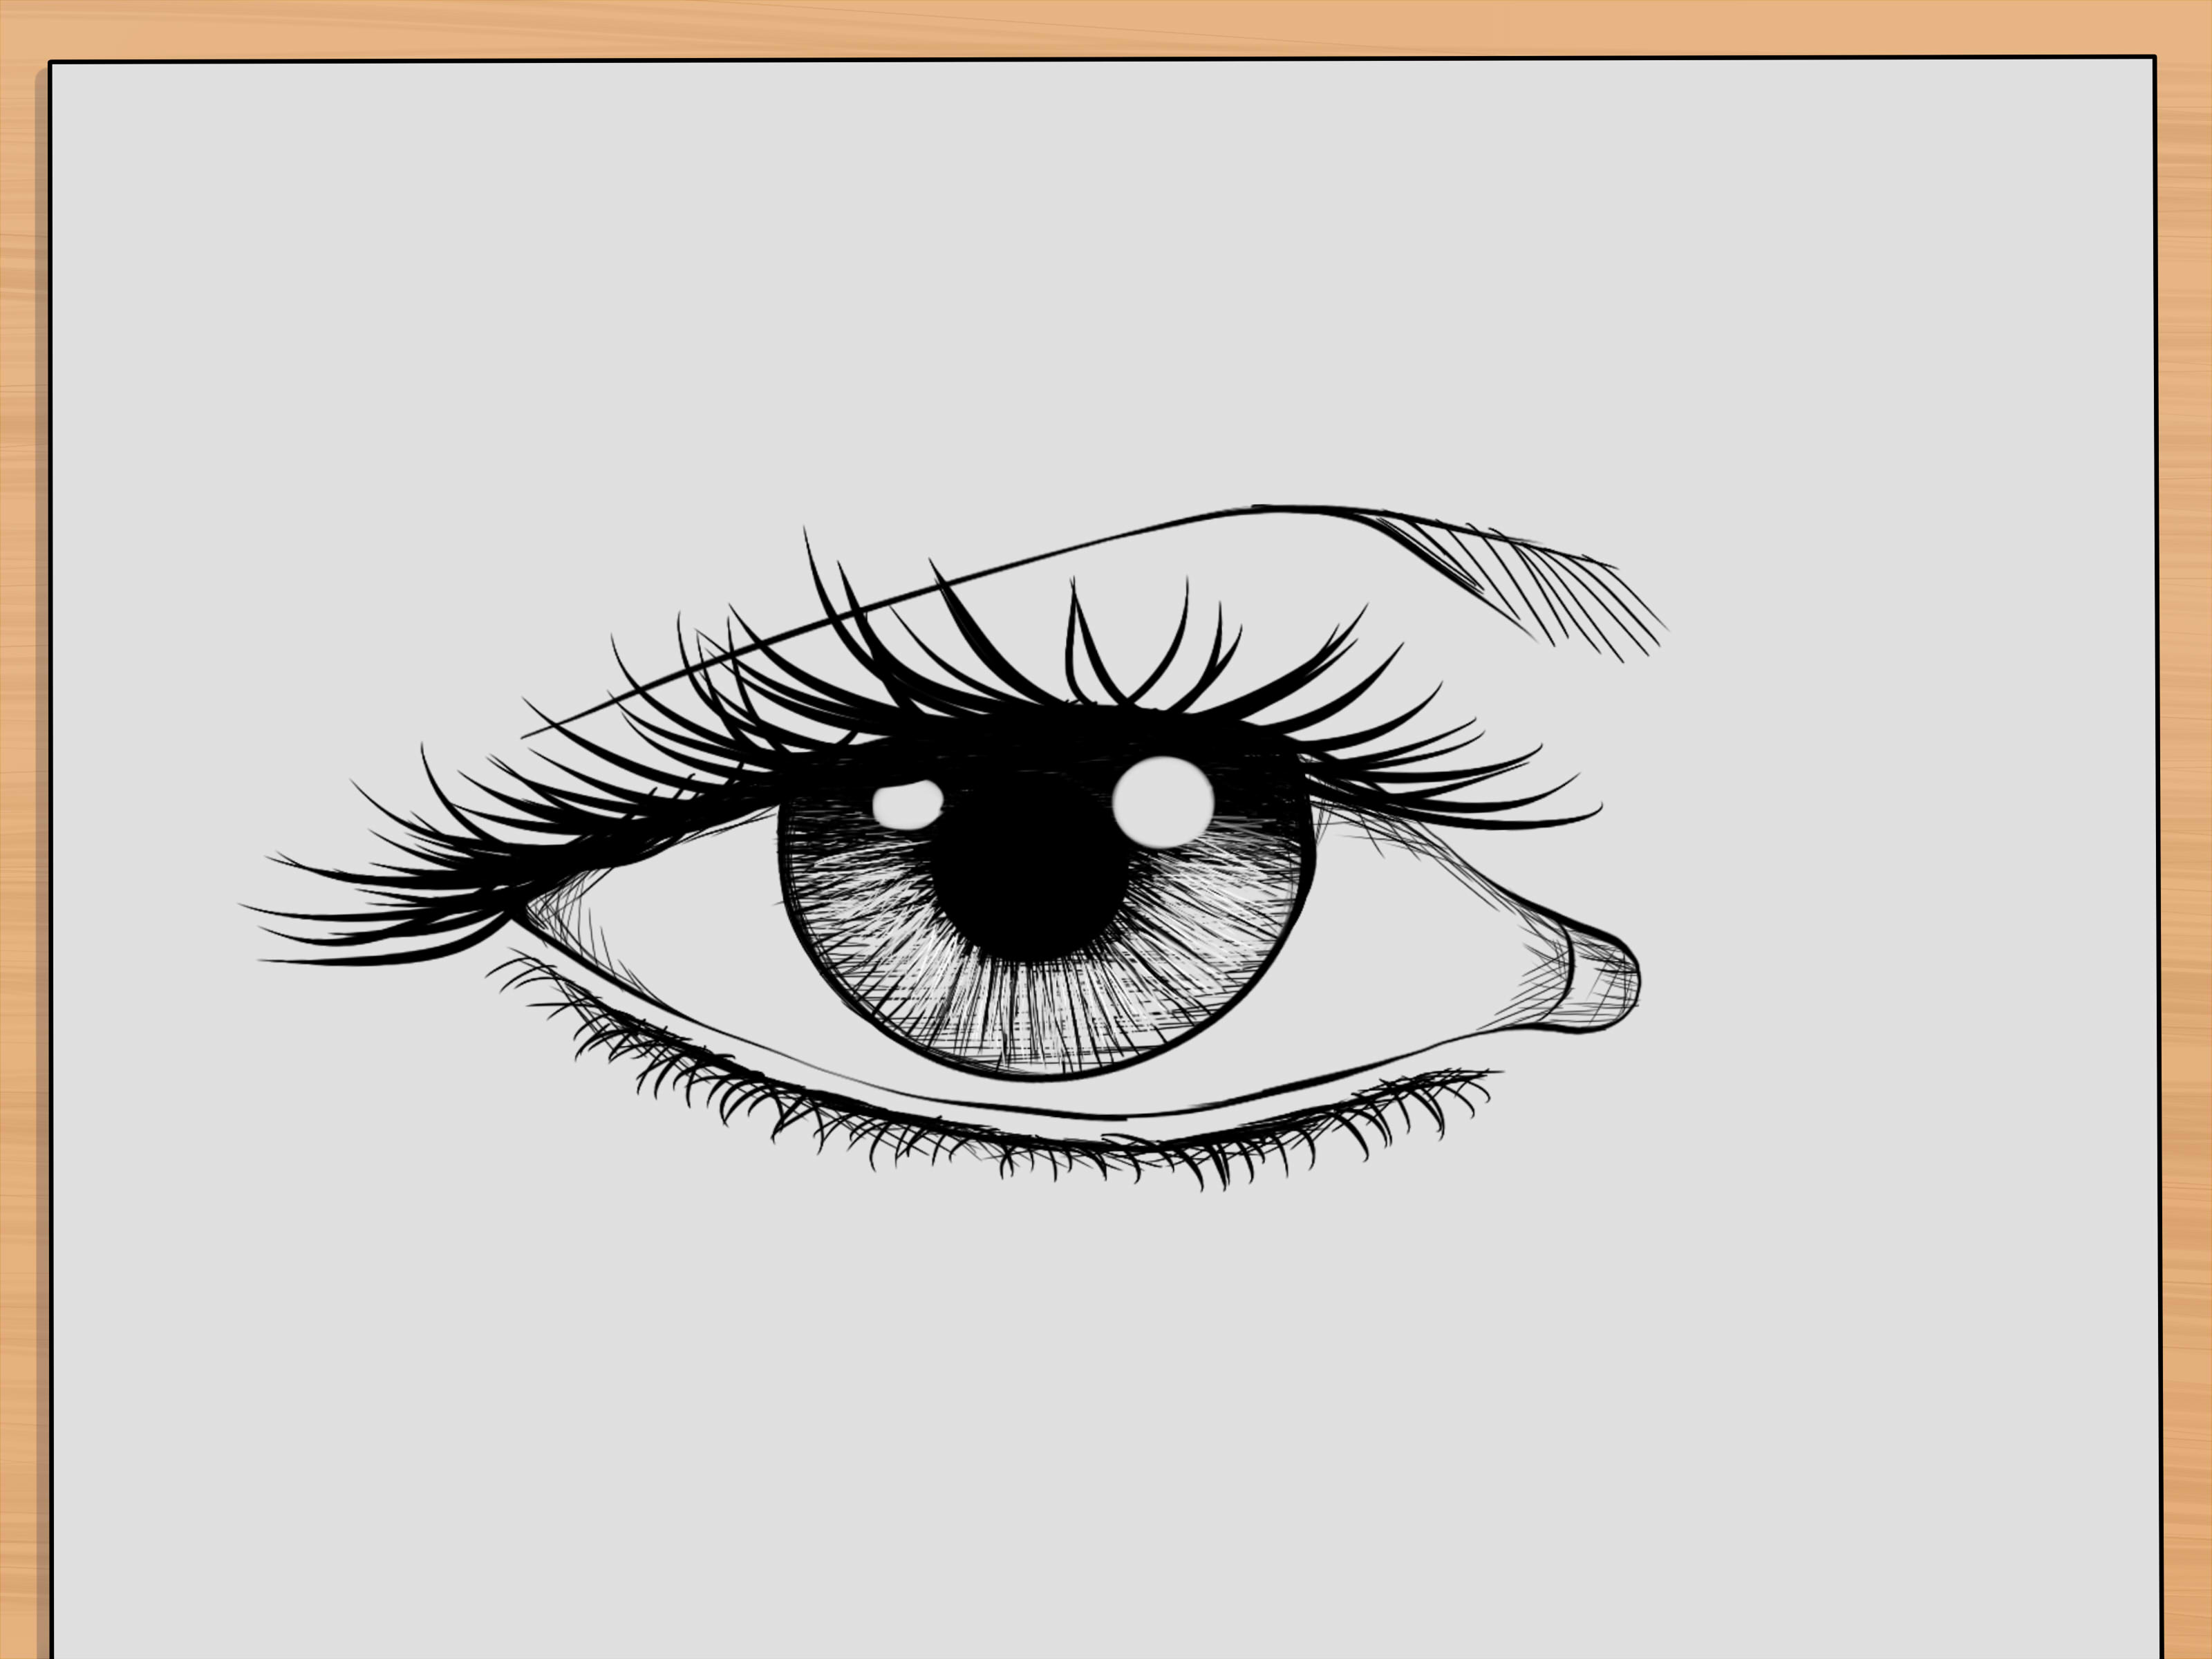 How To Draw Realistic Human Eyes 7 Steps With Pictures